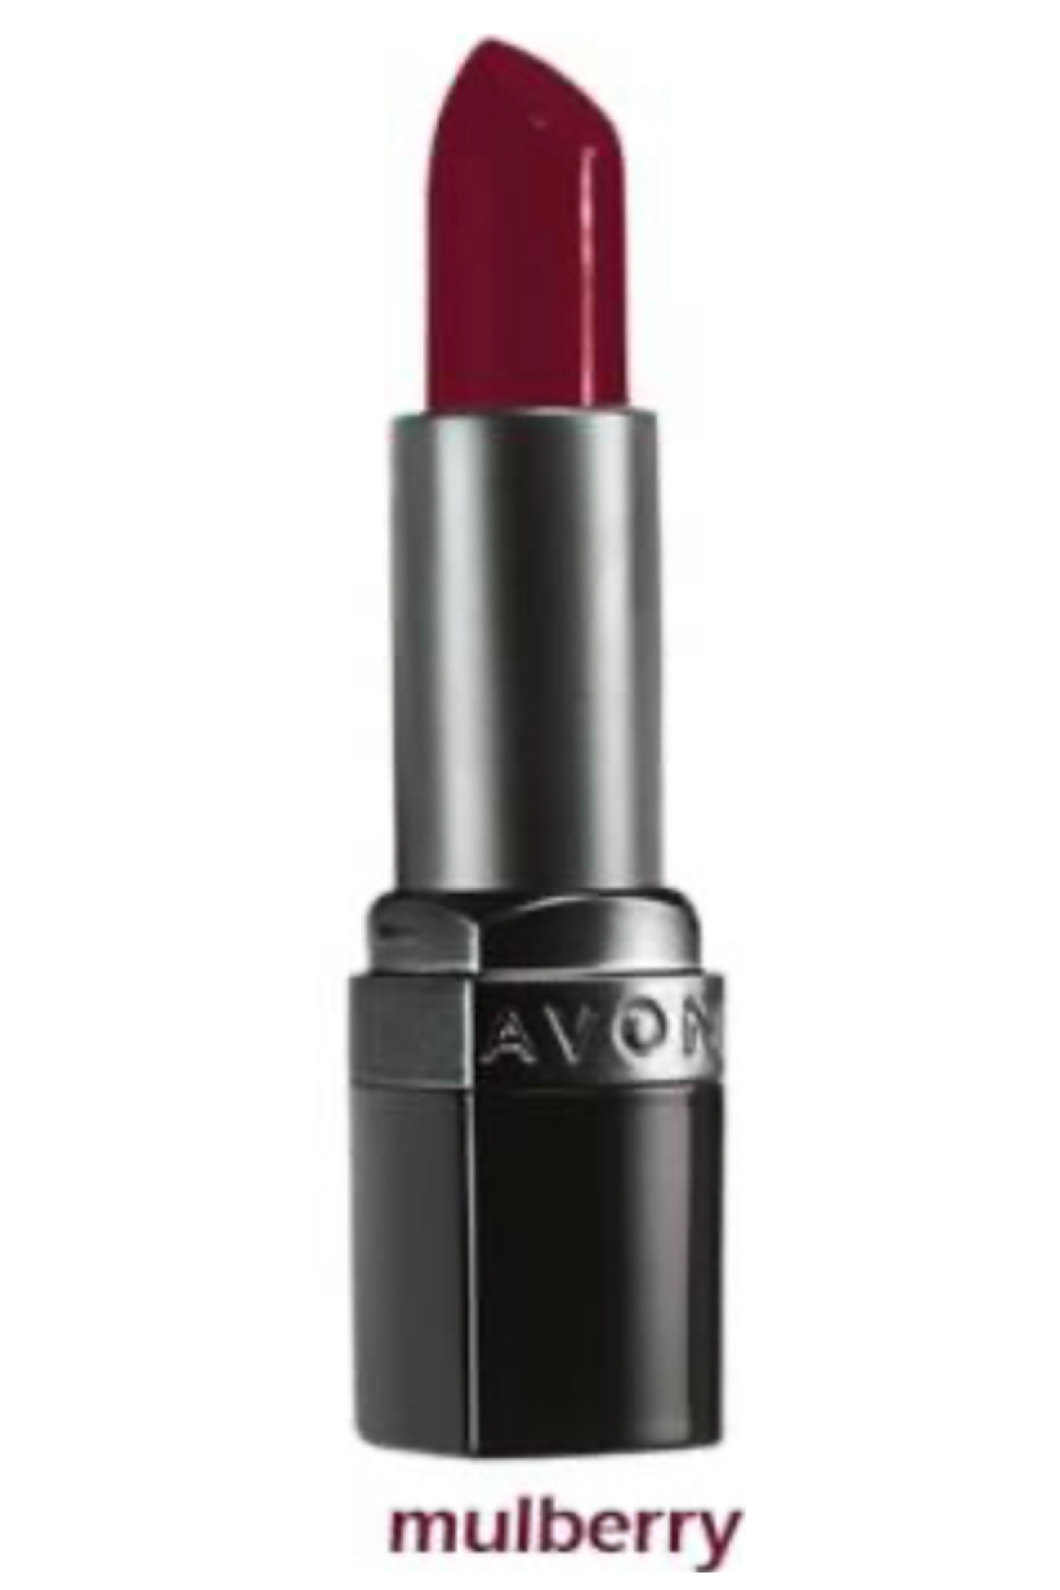 Matte Mulberry Ultra Color Matte Lipstick SPF 15